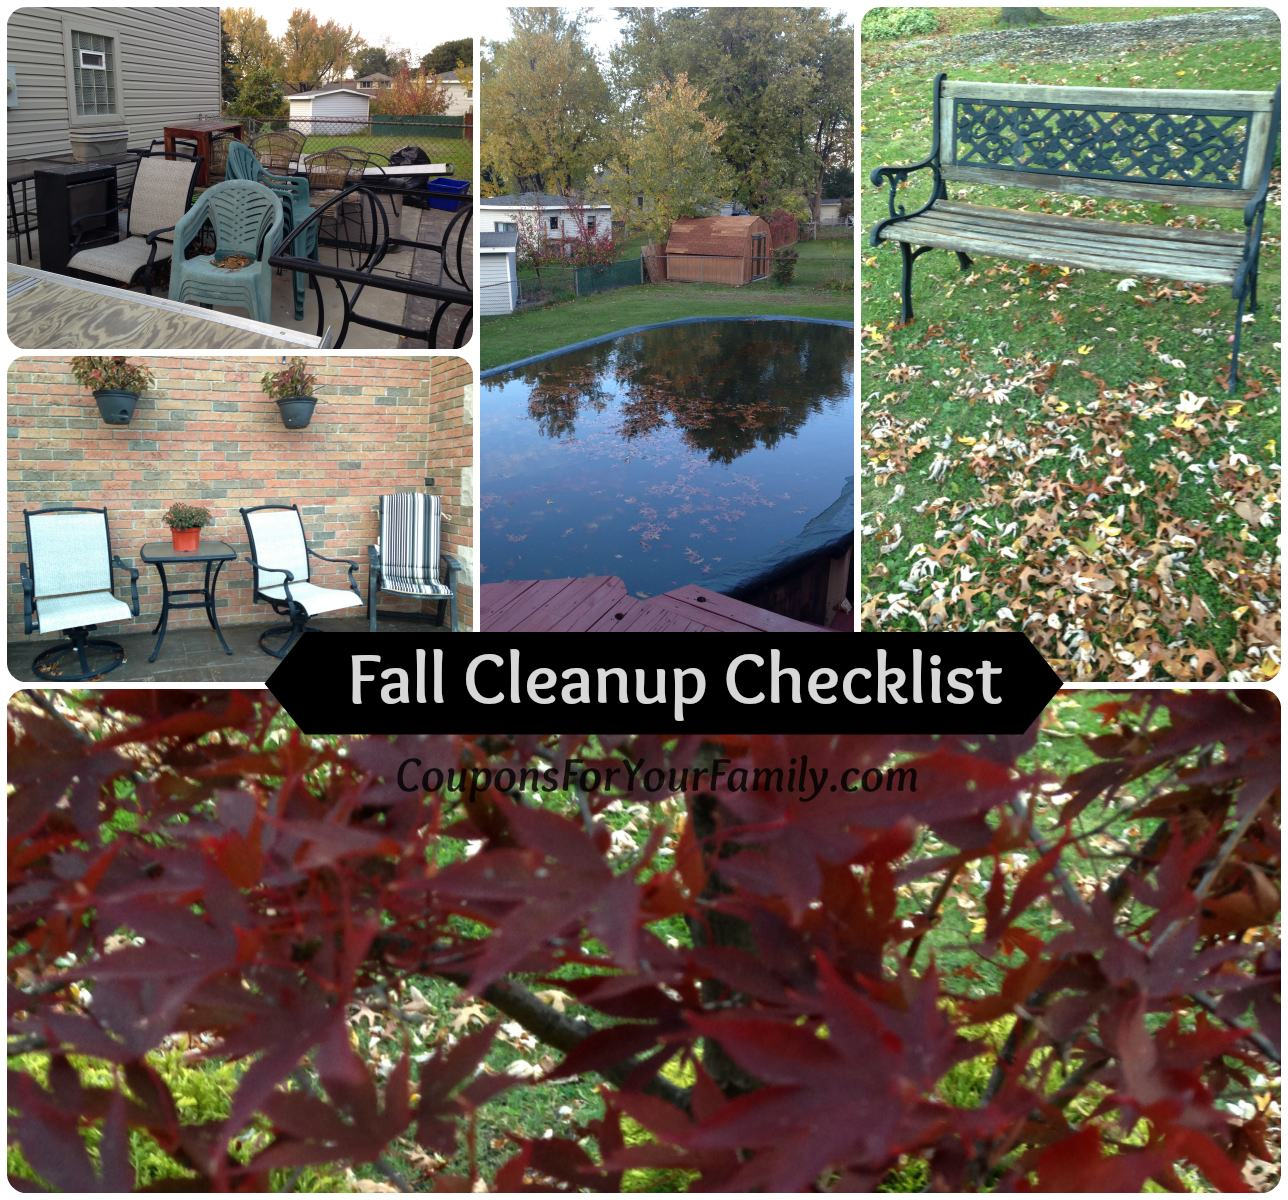 Your Fall Cleanup Checklist for your home… Are Your Ready?